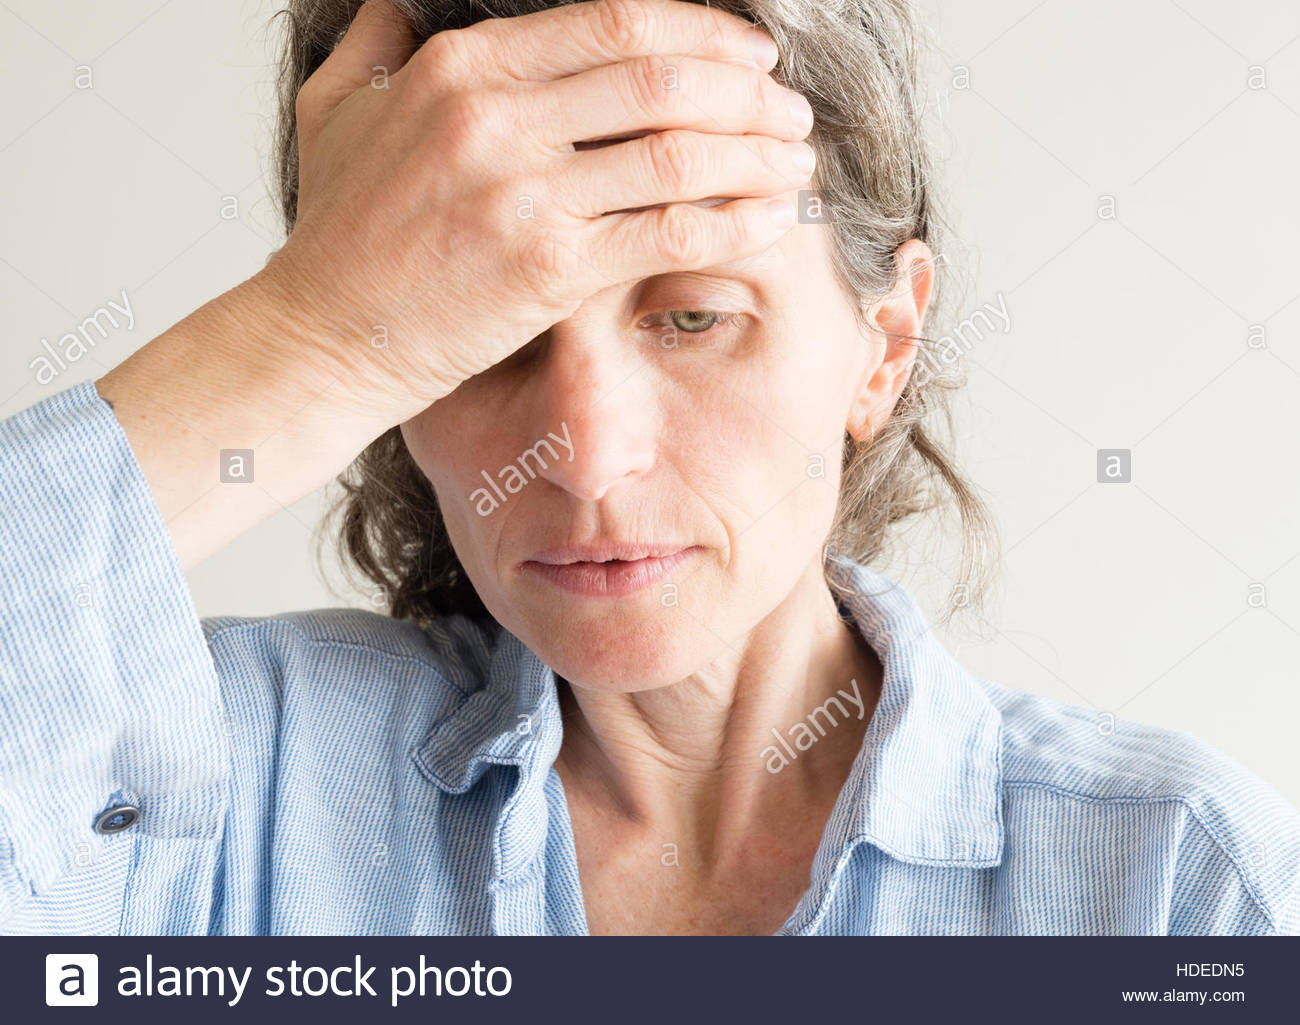 Close up of middle aged woman with hand on forehead covering one eye - Stock Image